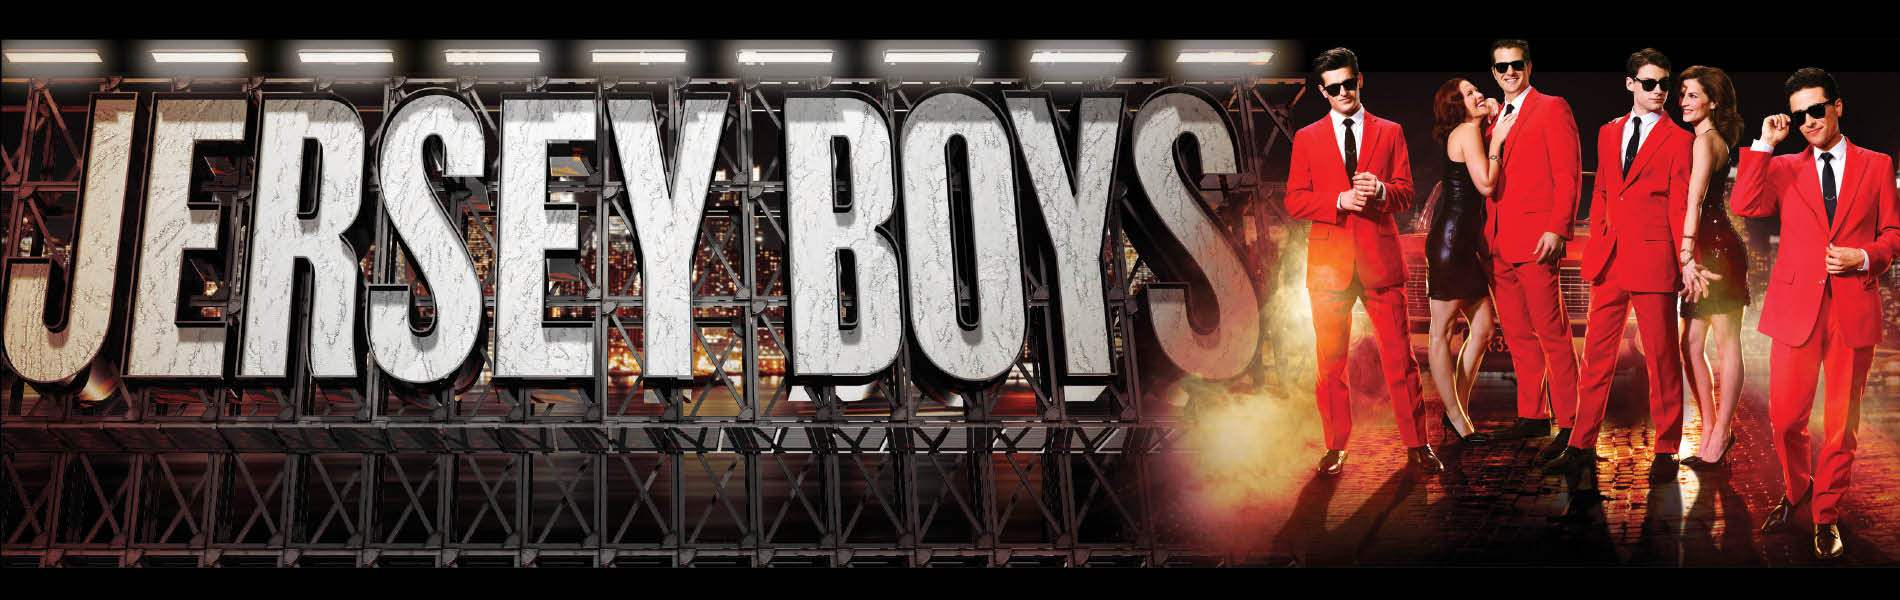 Jersey Boys Event Banner